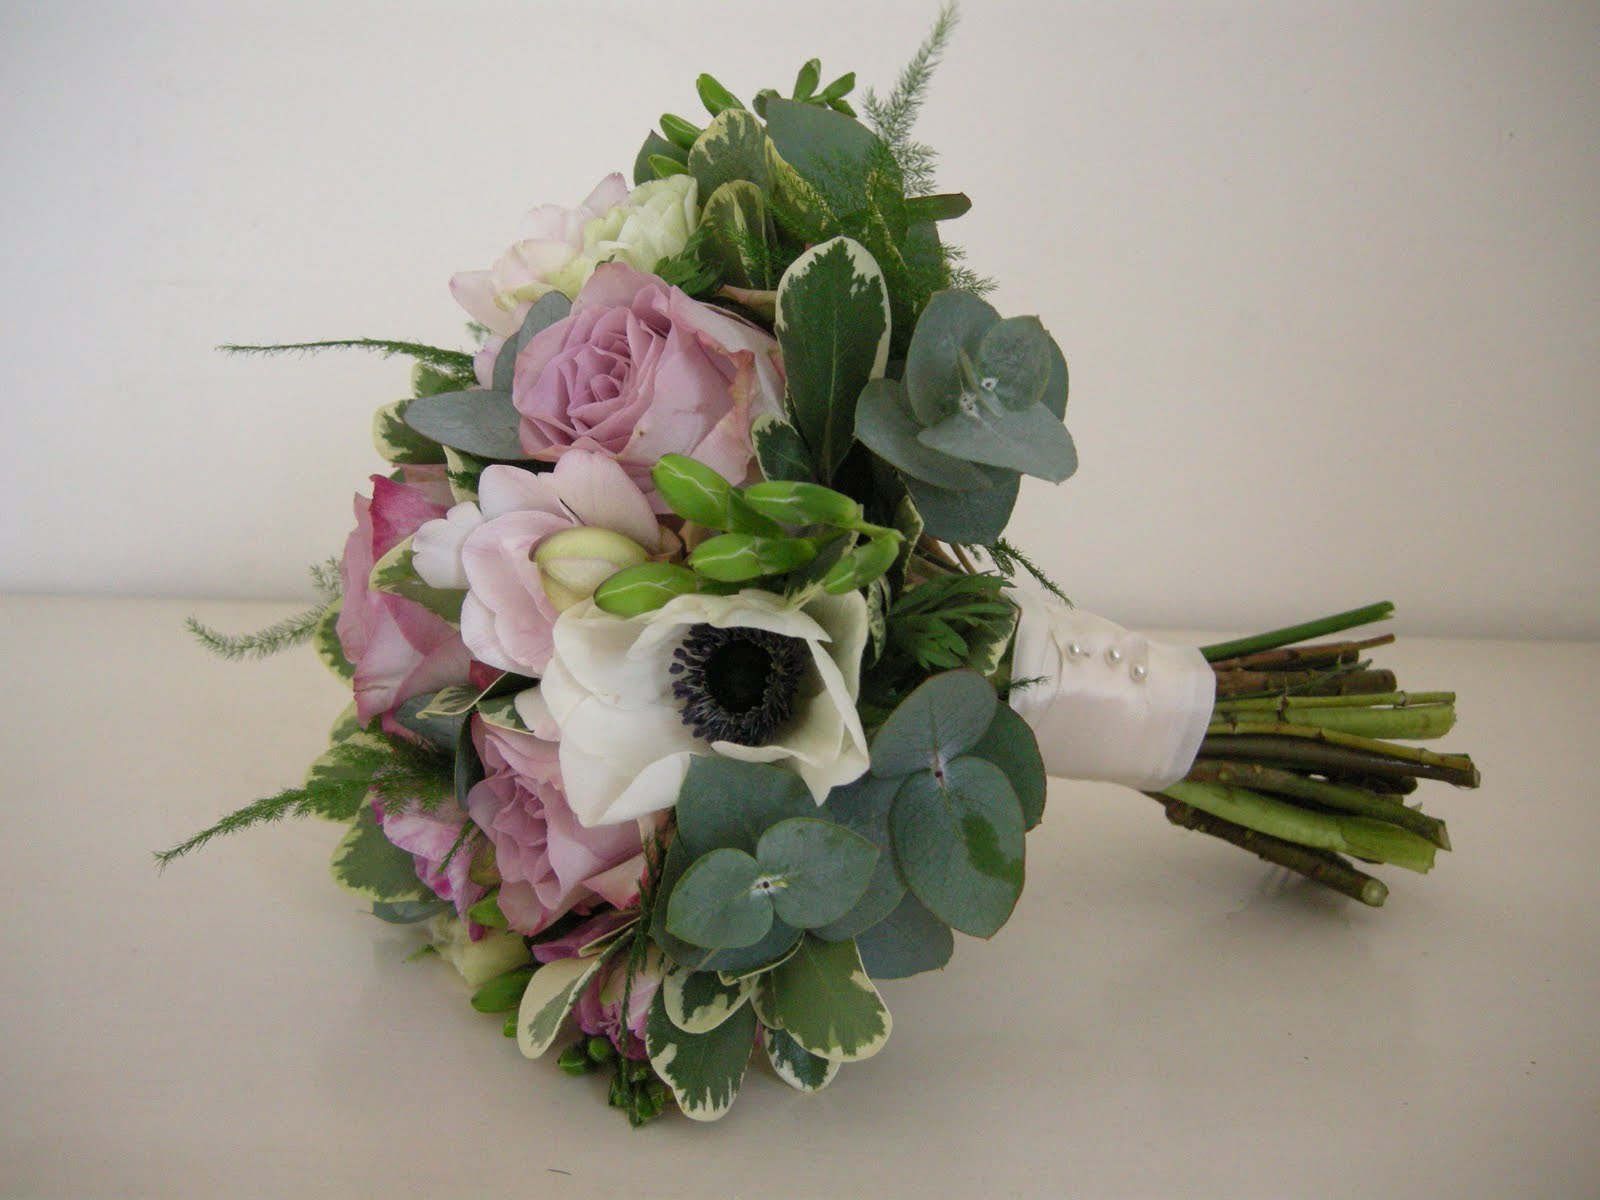 Wedding Flowers Blog Selinas Winter Wedding Flowers With Vintage Theme